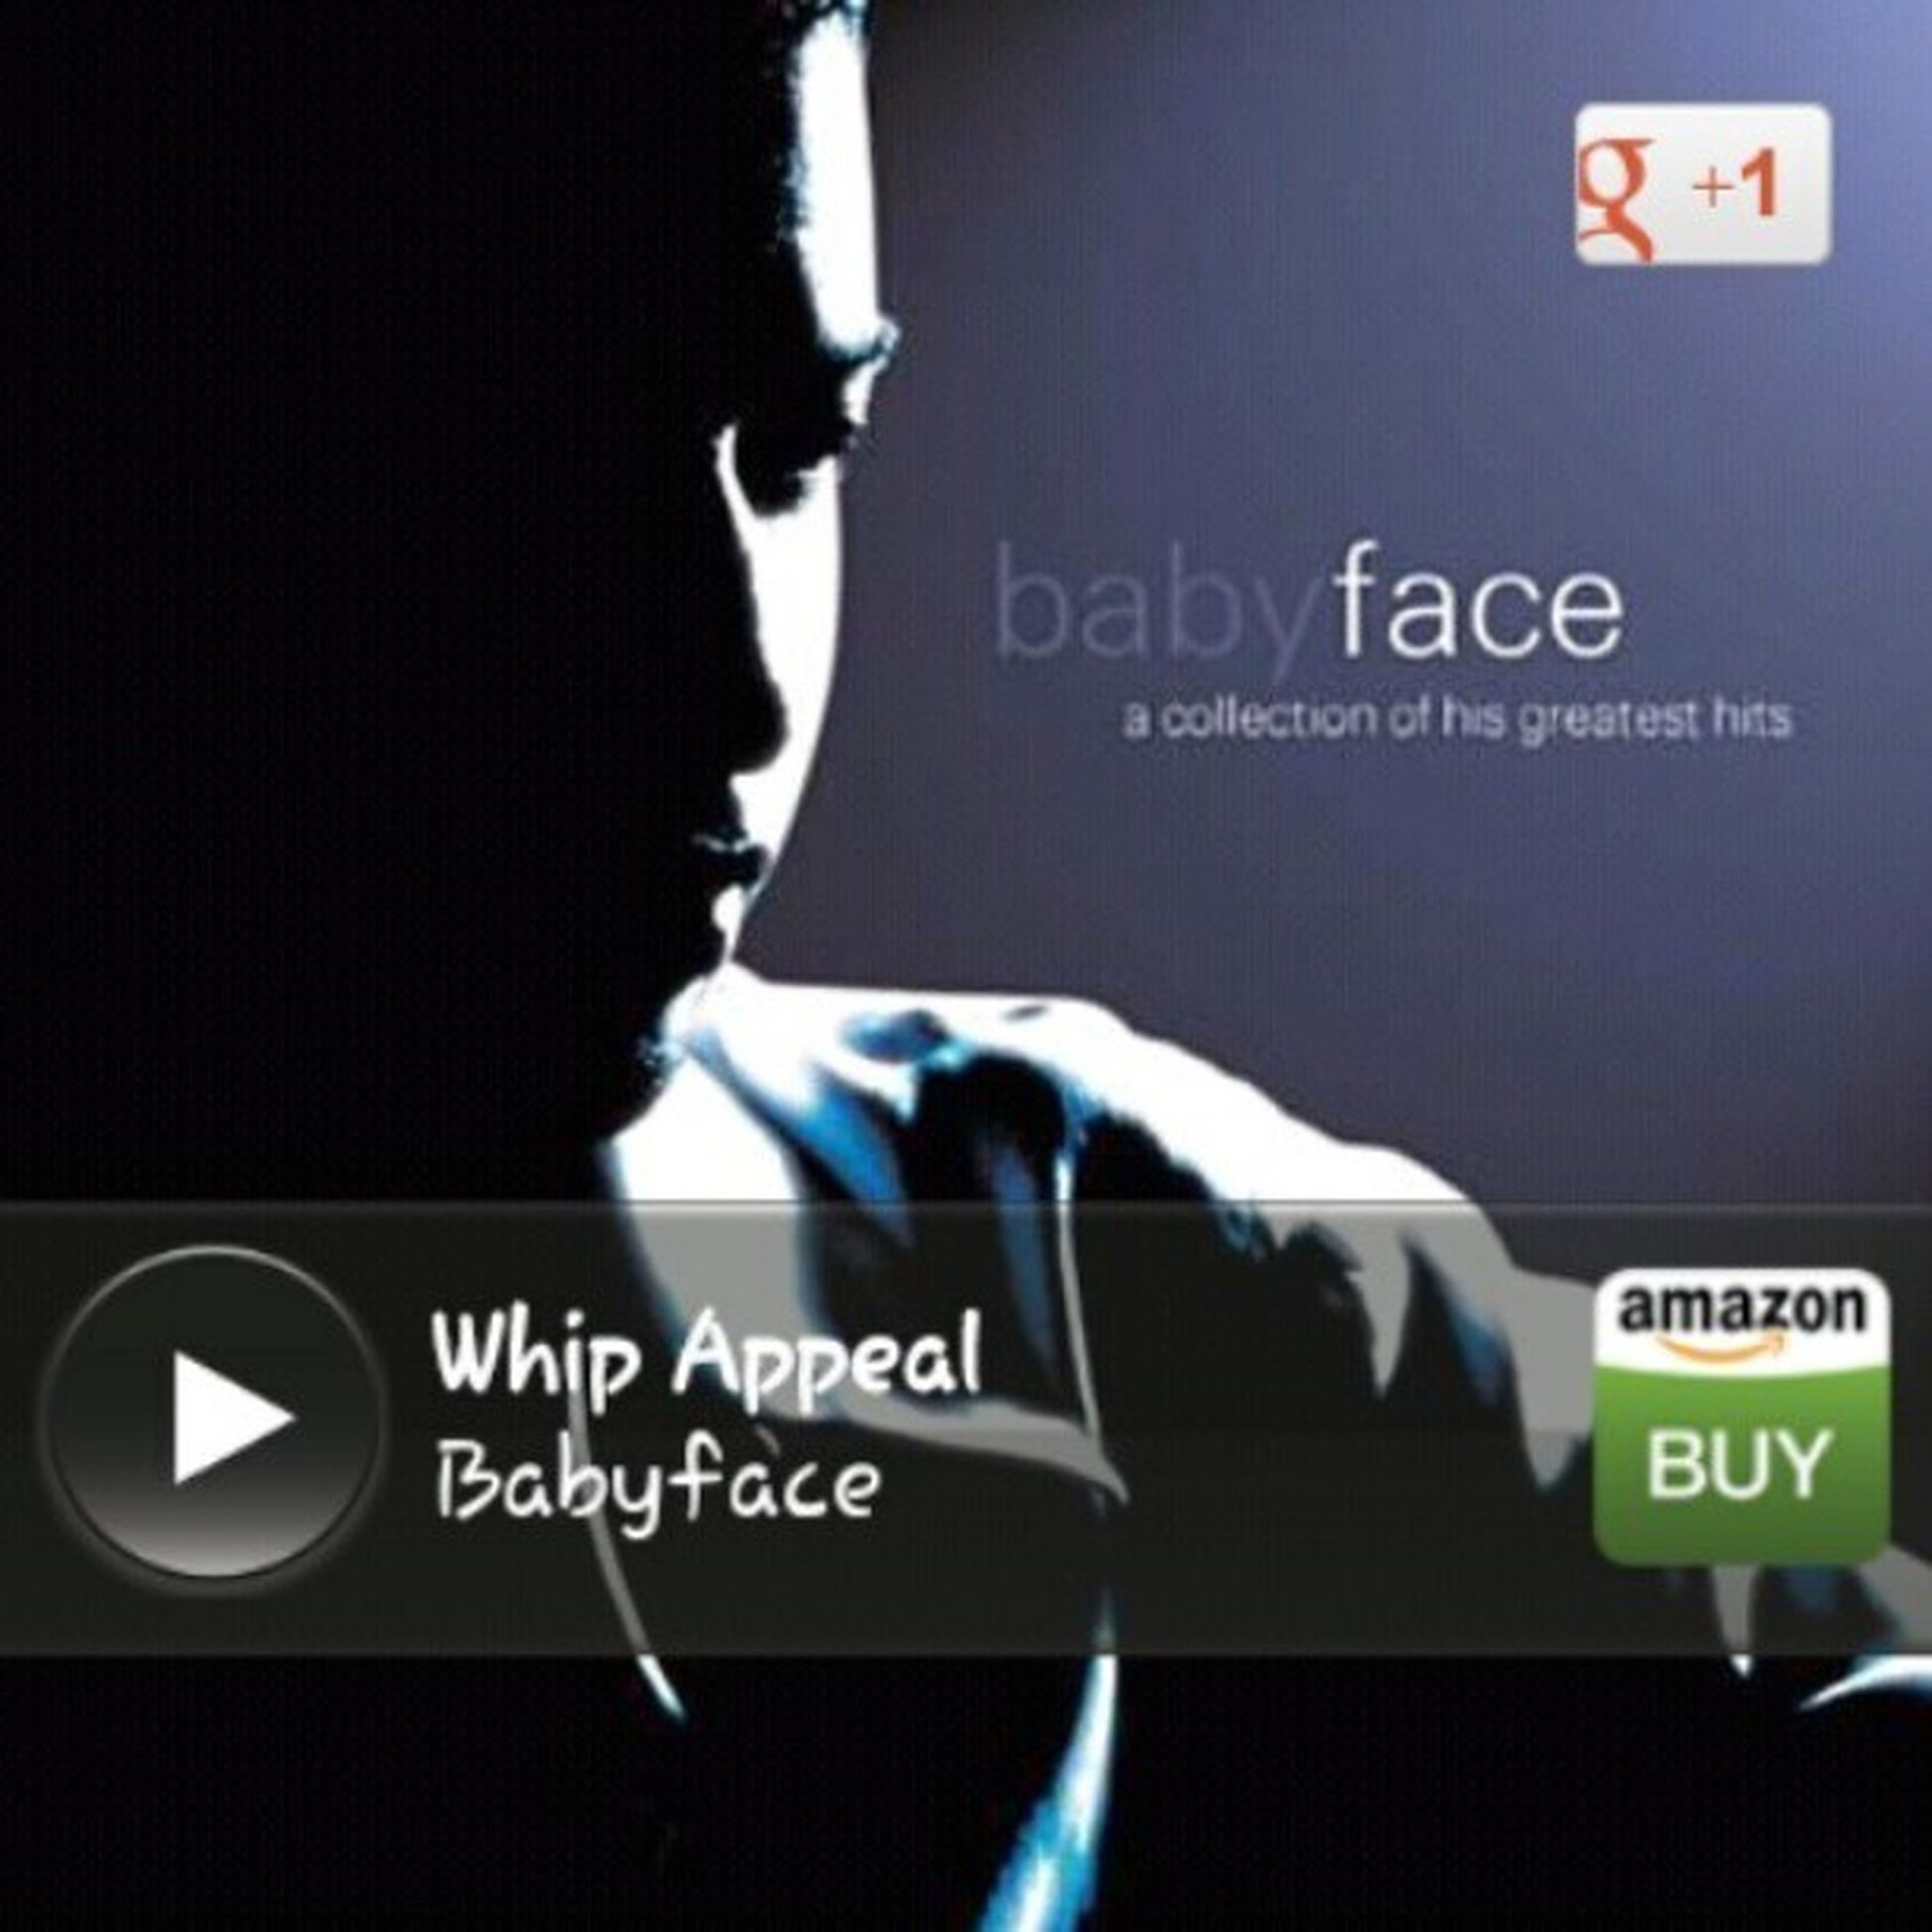 """""""Whatever you want its alright with me, You got that whip appeal come on & work it on me."""" Babyface Whipappeal"""